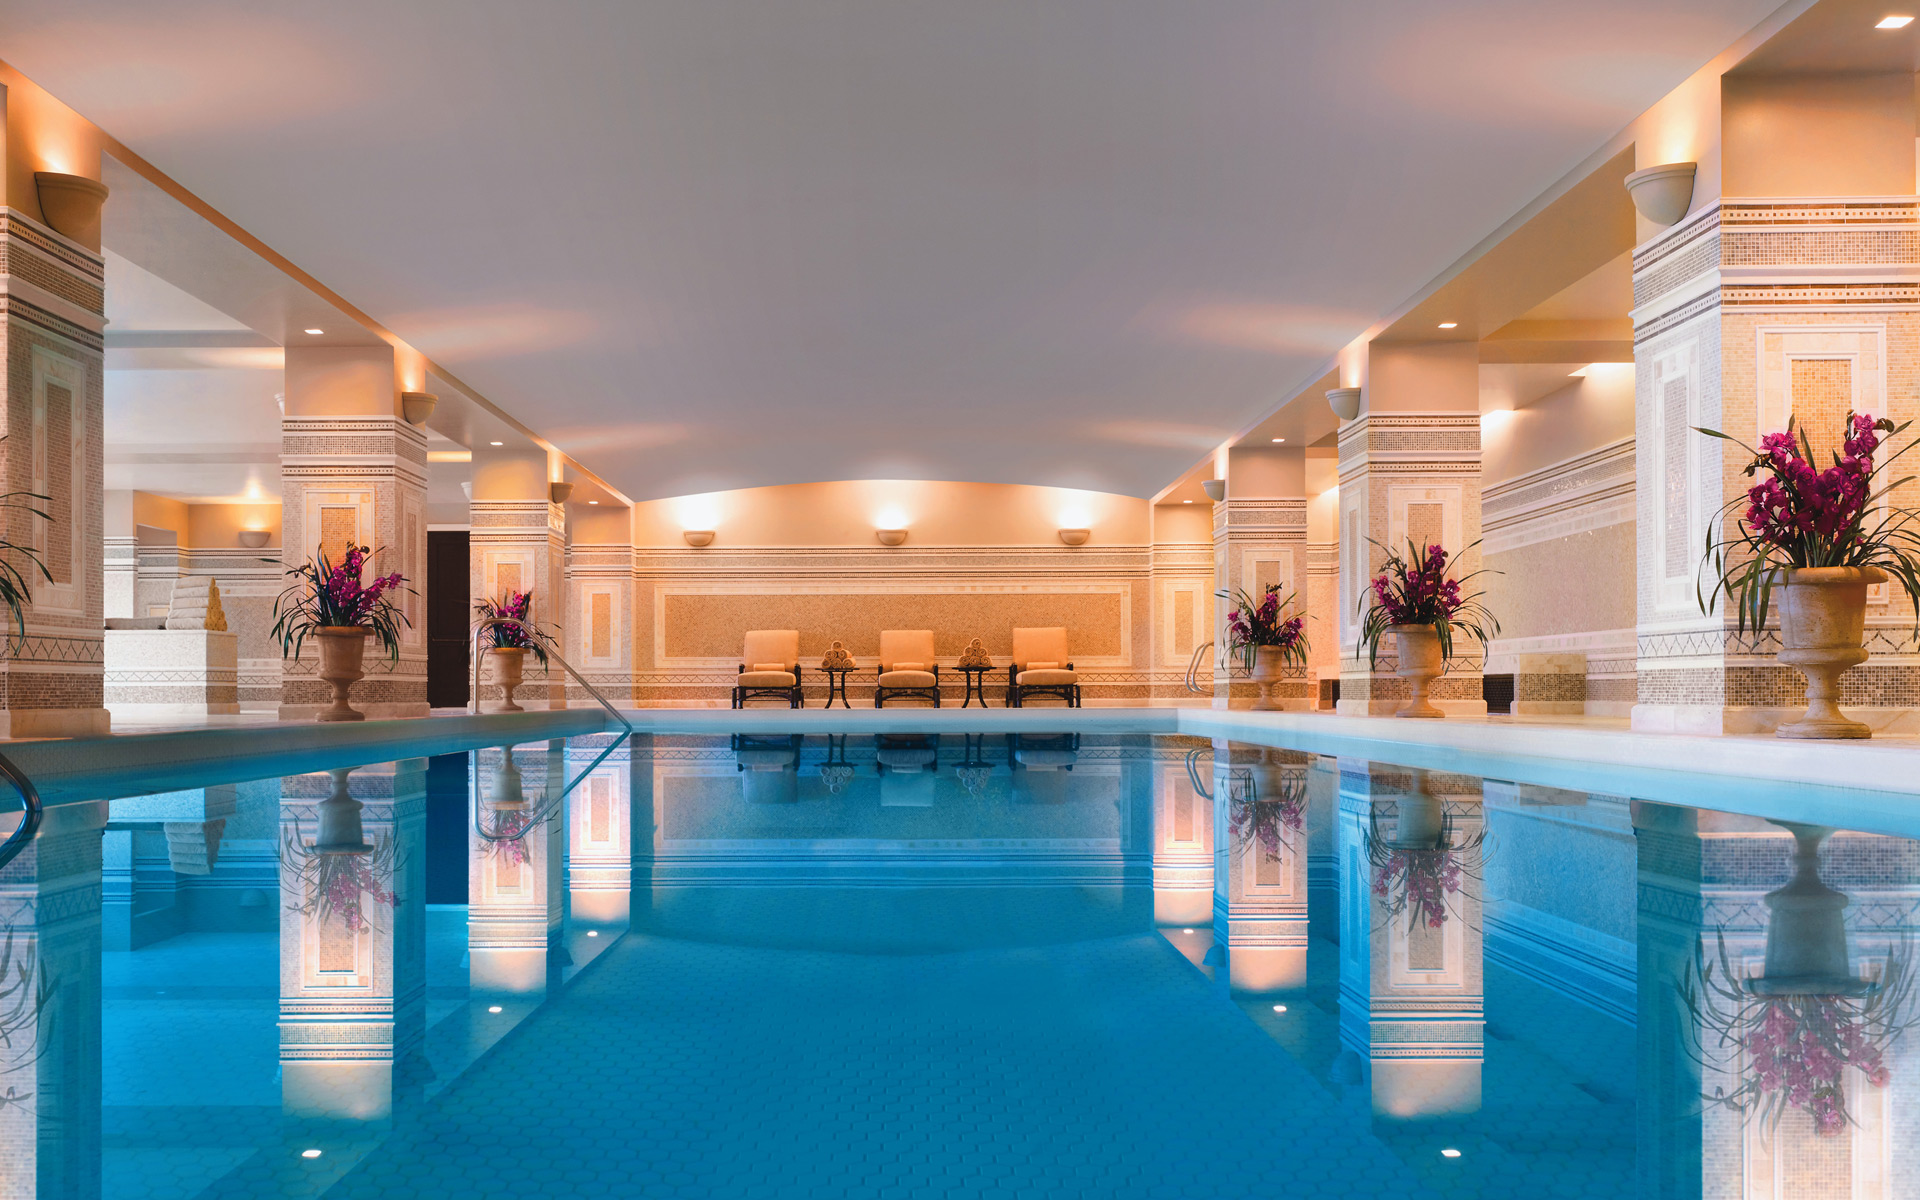 Spa Montage Deer Valley's pool is modeled after the Hearst Castle's pool.